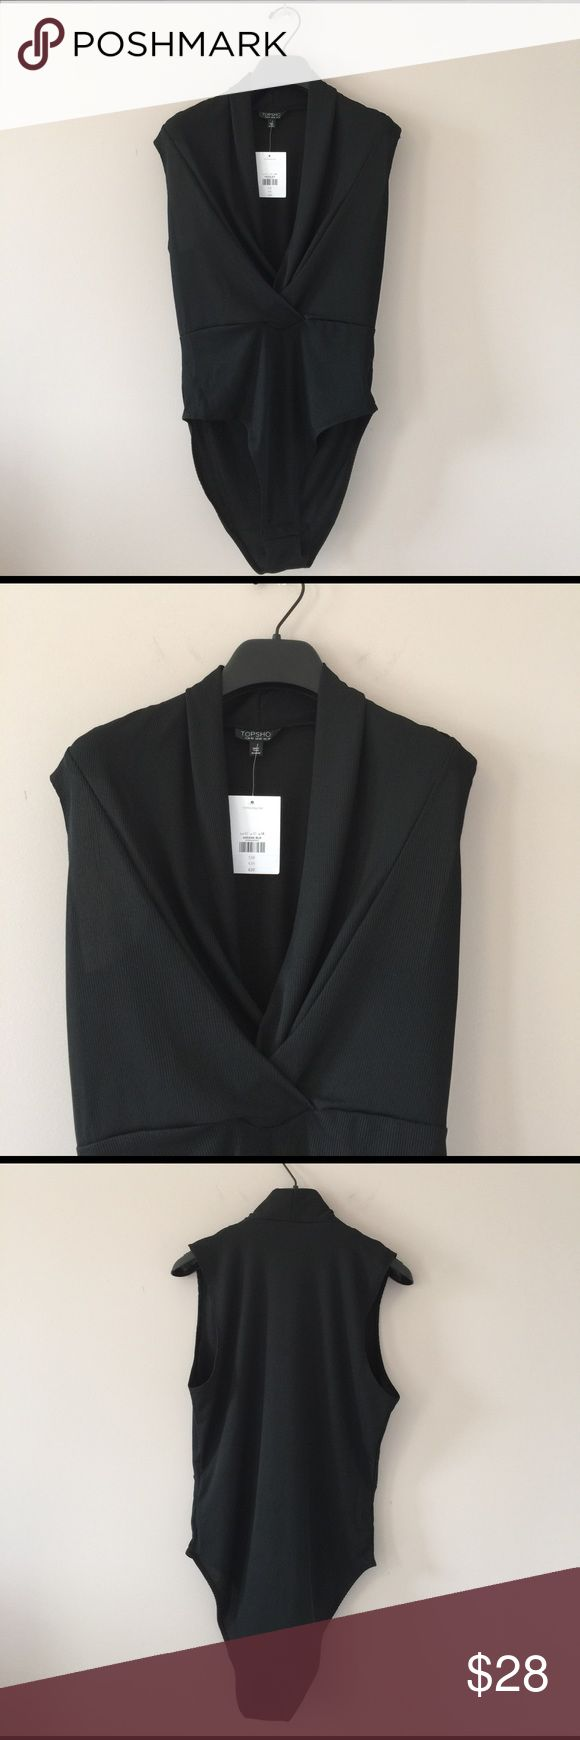 TopShop top NWT! Soft with 96% polyester 4% elastane in body suit style . Very sexy neckline. Short sleeves. Please check pictures, ask questions if needed. Firm! TopShop Tops Blouses